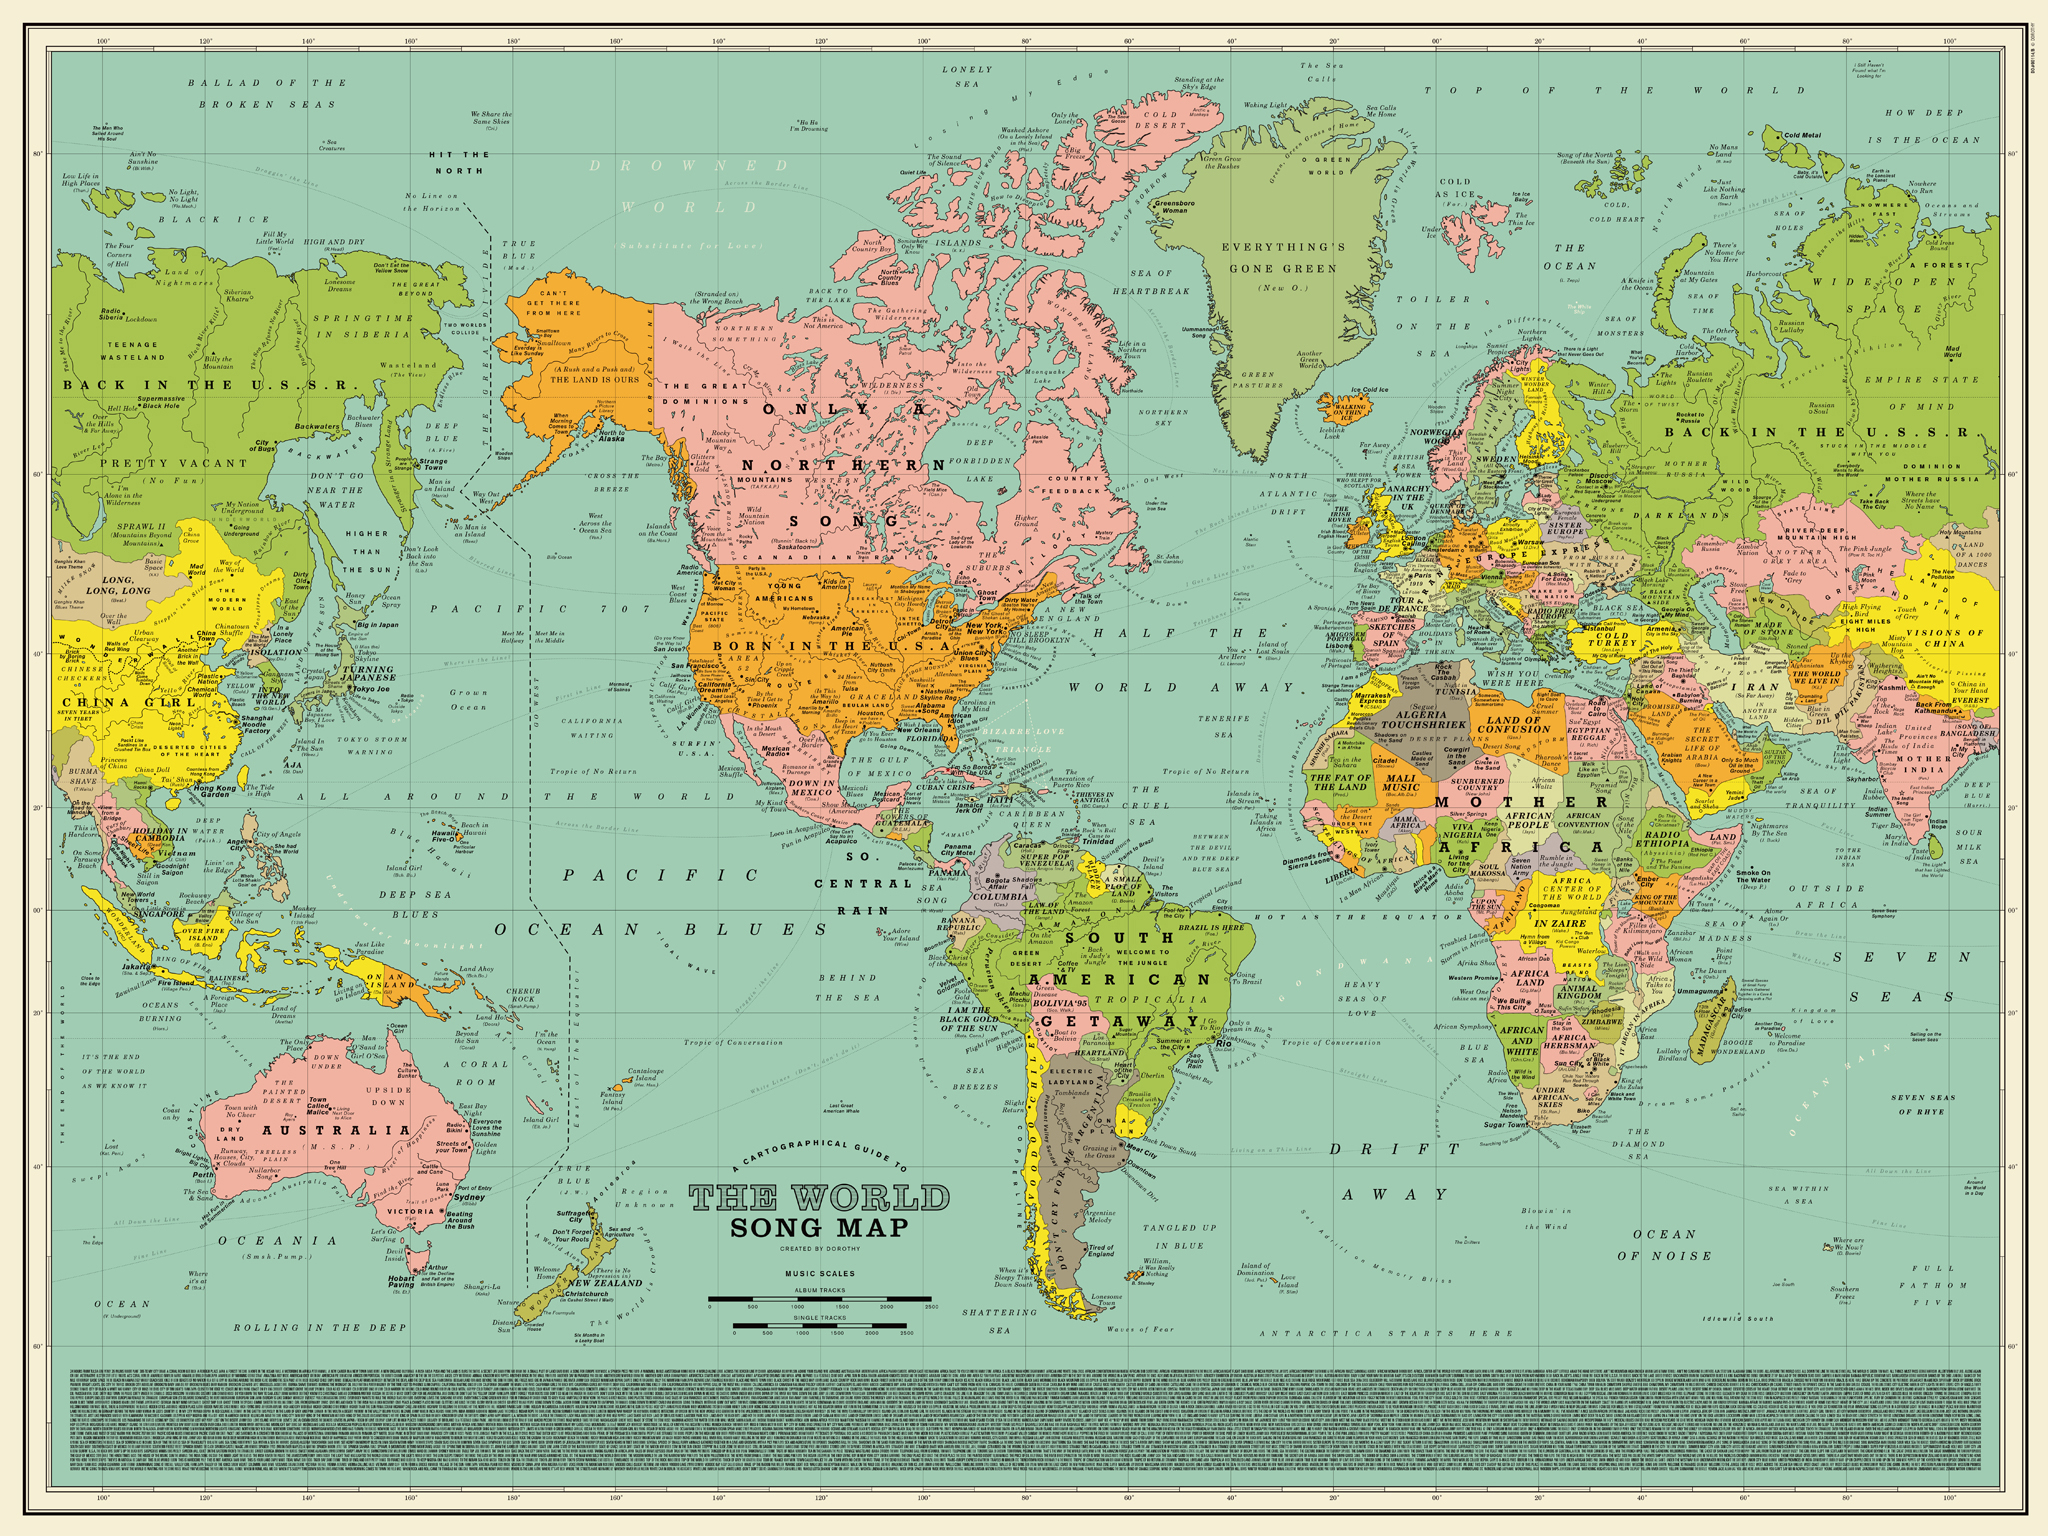 World Song Map A Detailed Poster That Imagines The World Map Made - Map wold